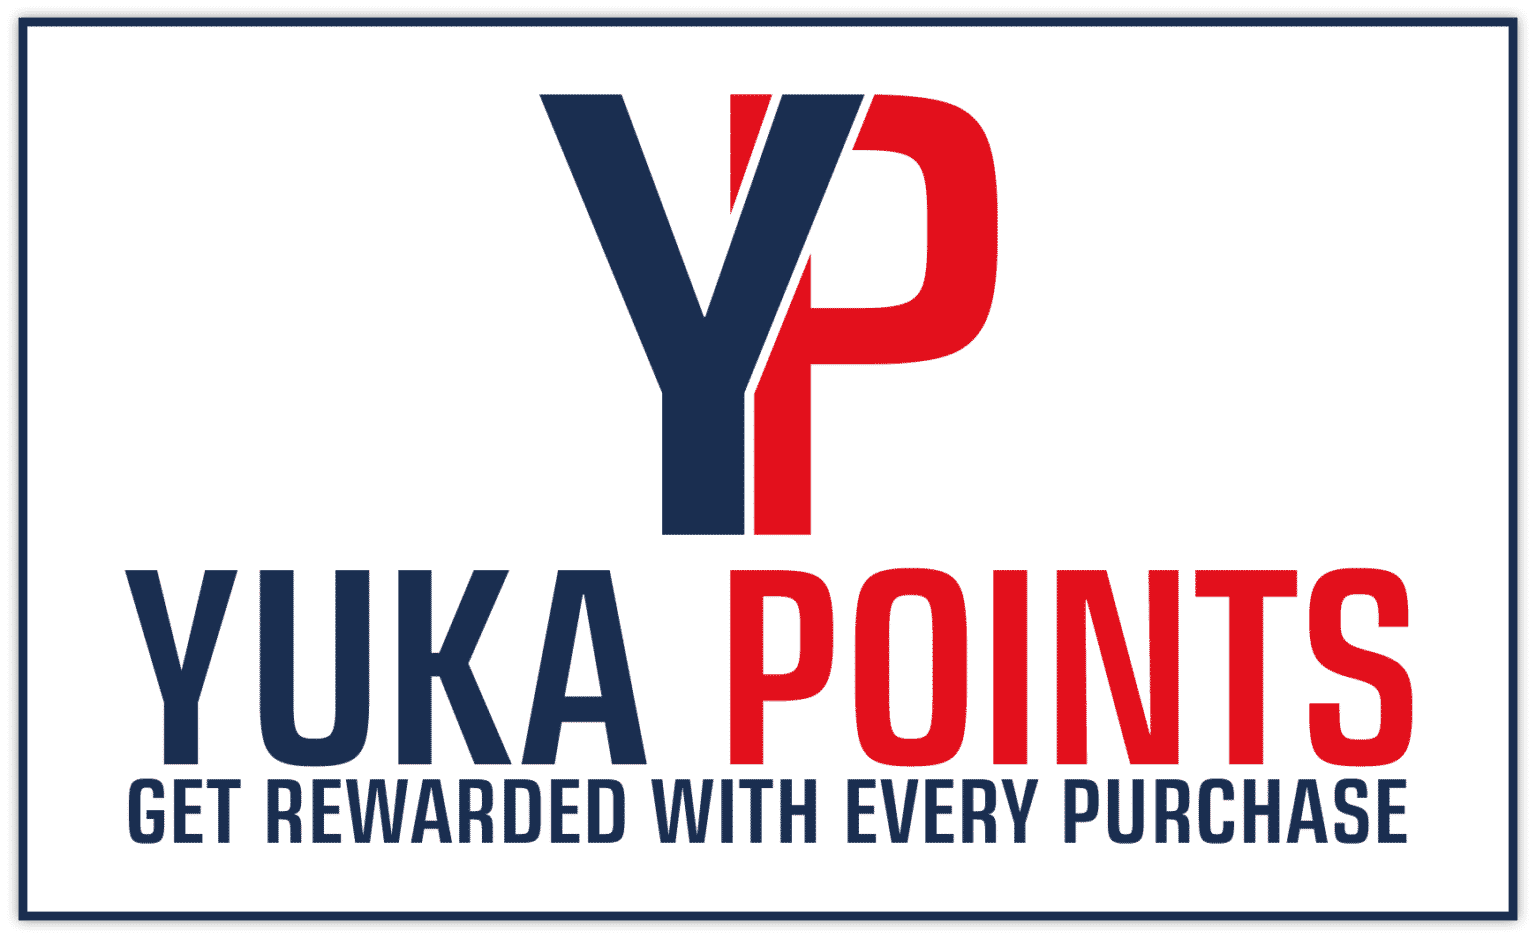 Yuka points badgel horizontal_vertical_boxed